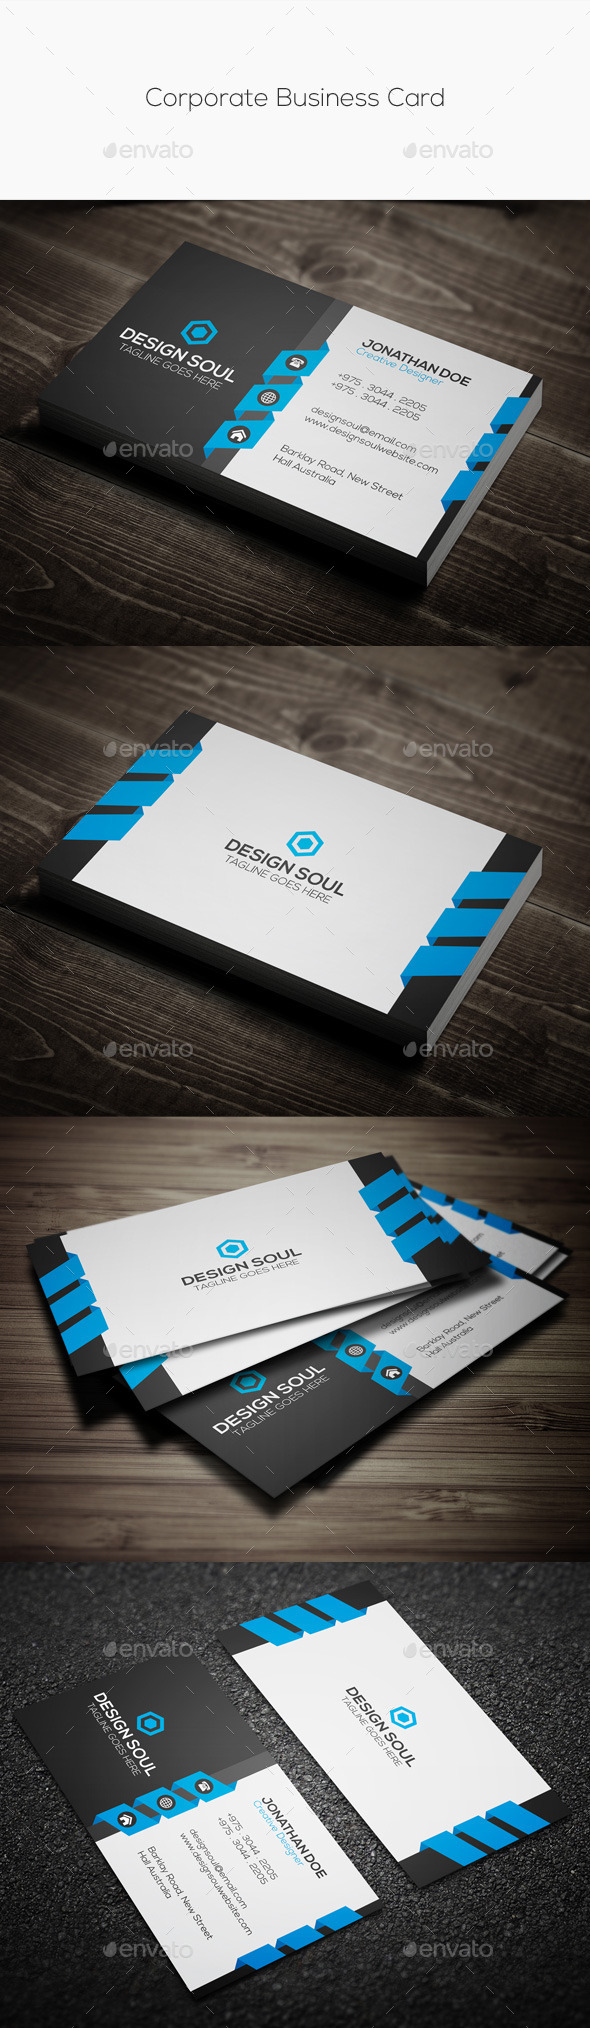 GraphicRiver Corporate Business Card 11324454